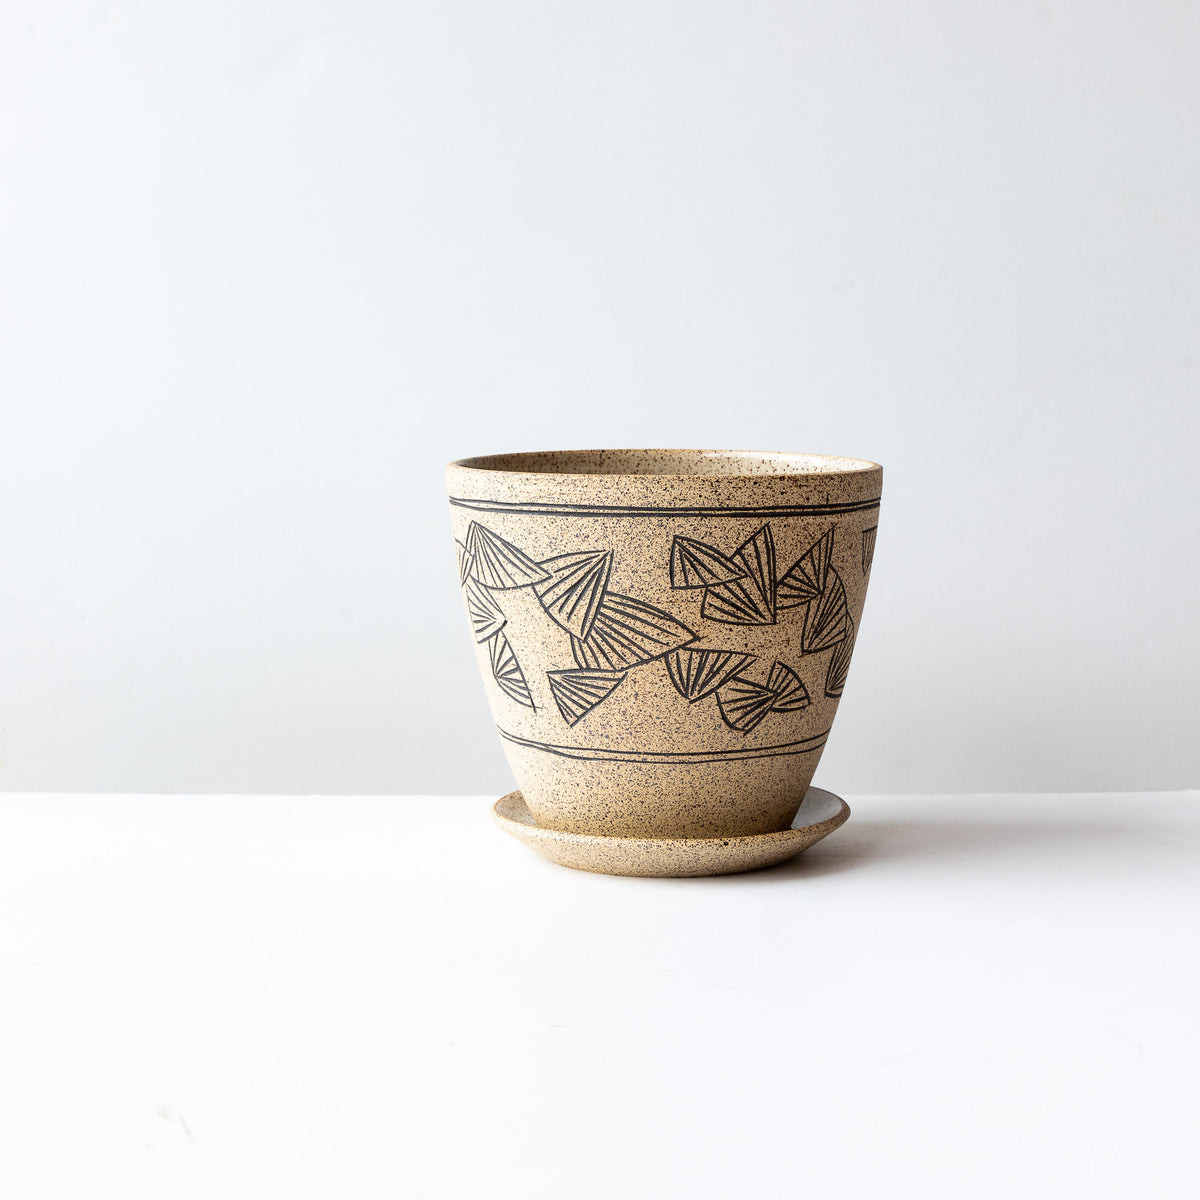 Handmade Mishima Stoneware Plant Pot With Saucer - Sold by Chic & Basta